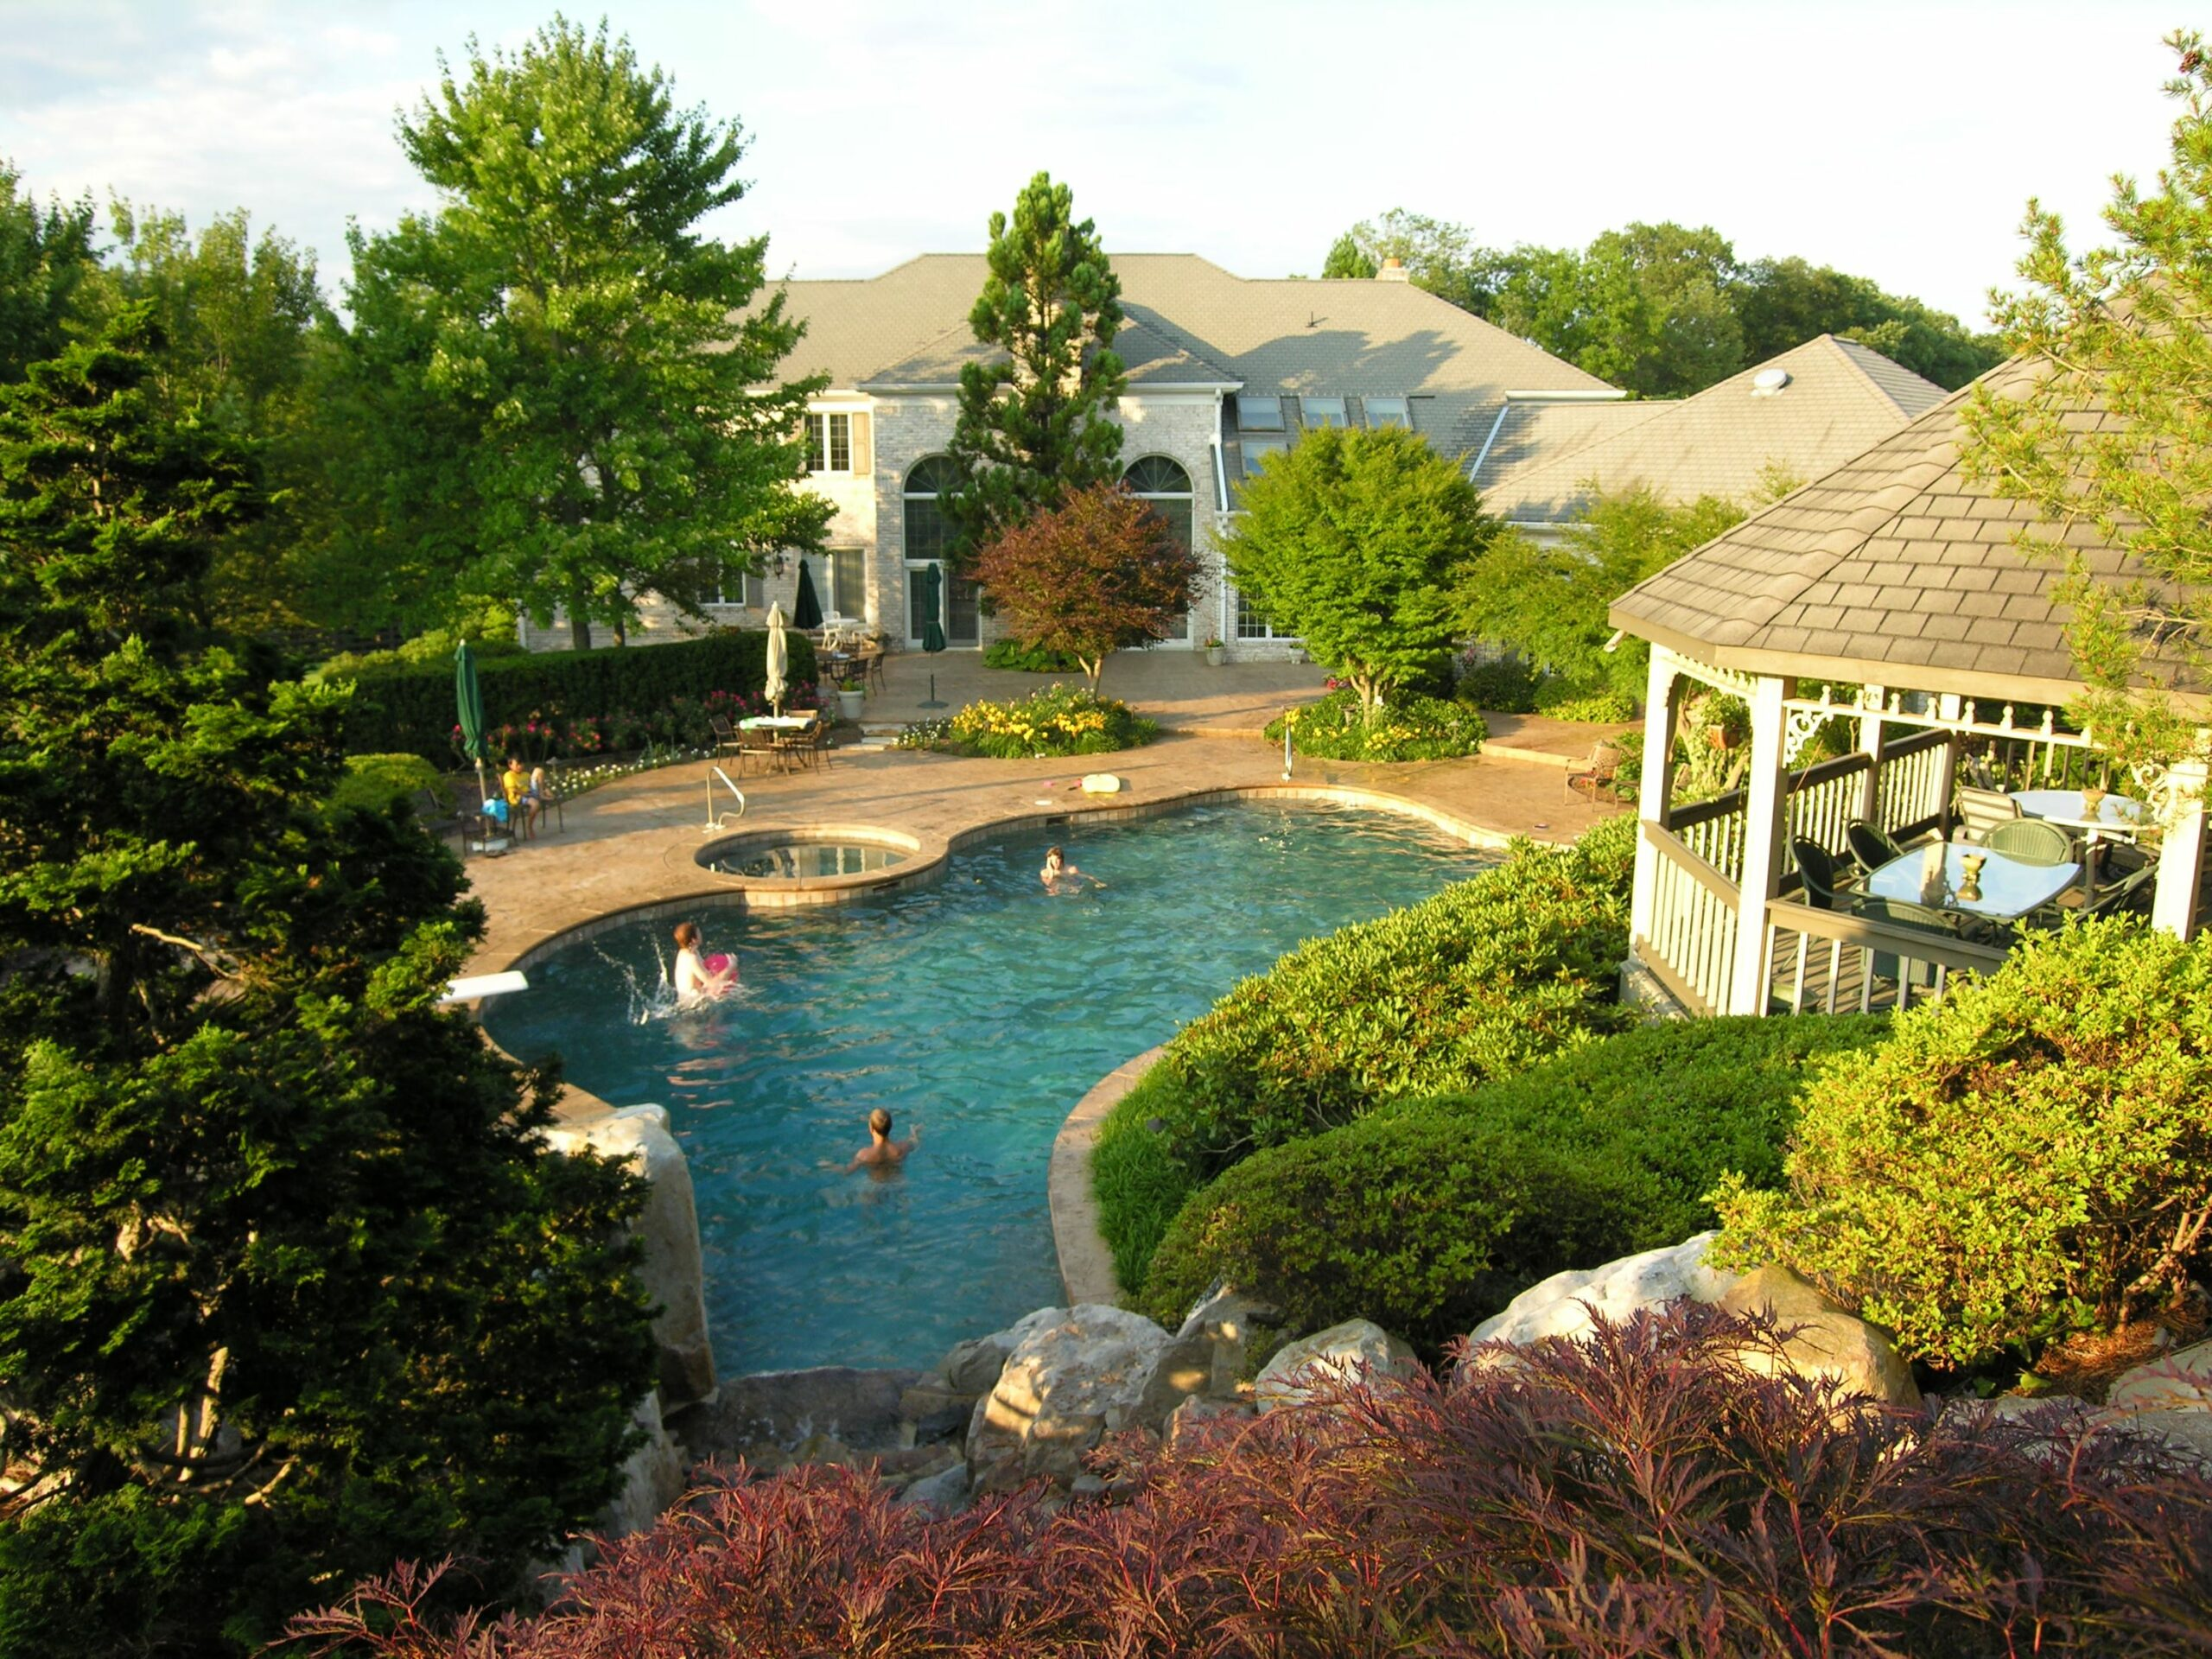 Plantings soften ample patio, bringing life and natural beauty to swimming pool garden, Manheim, PA